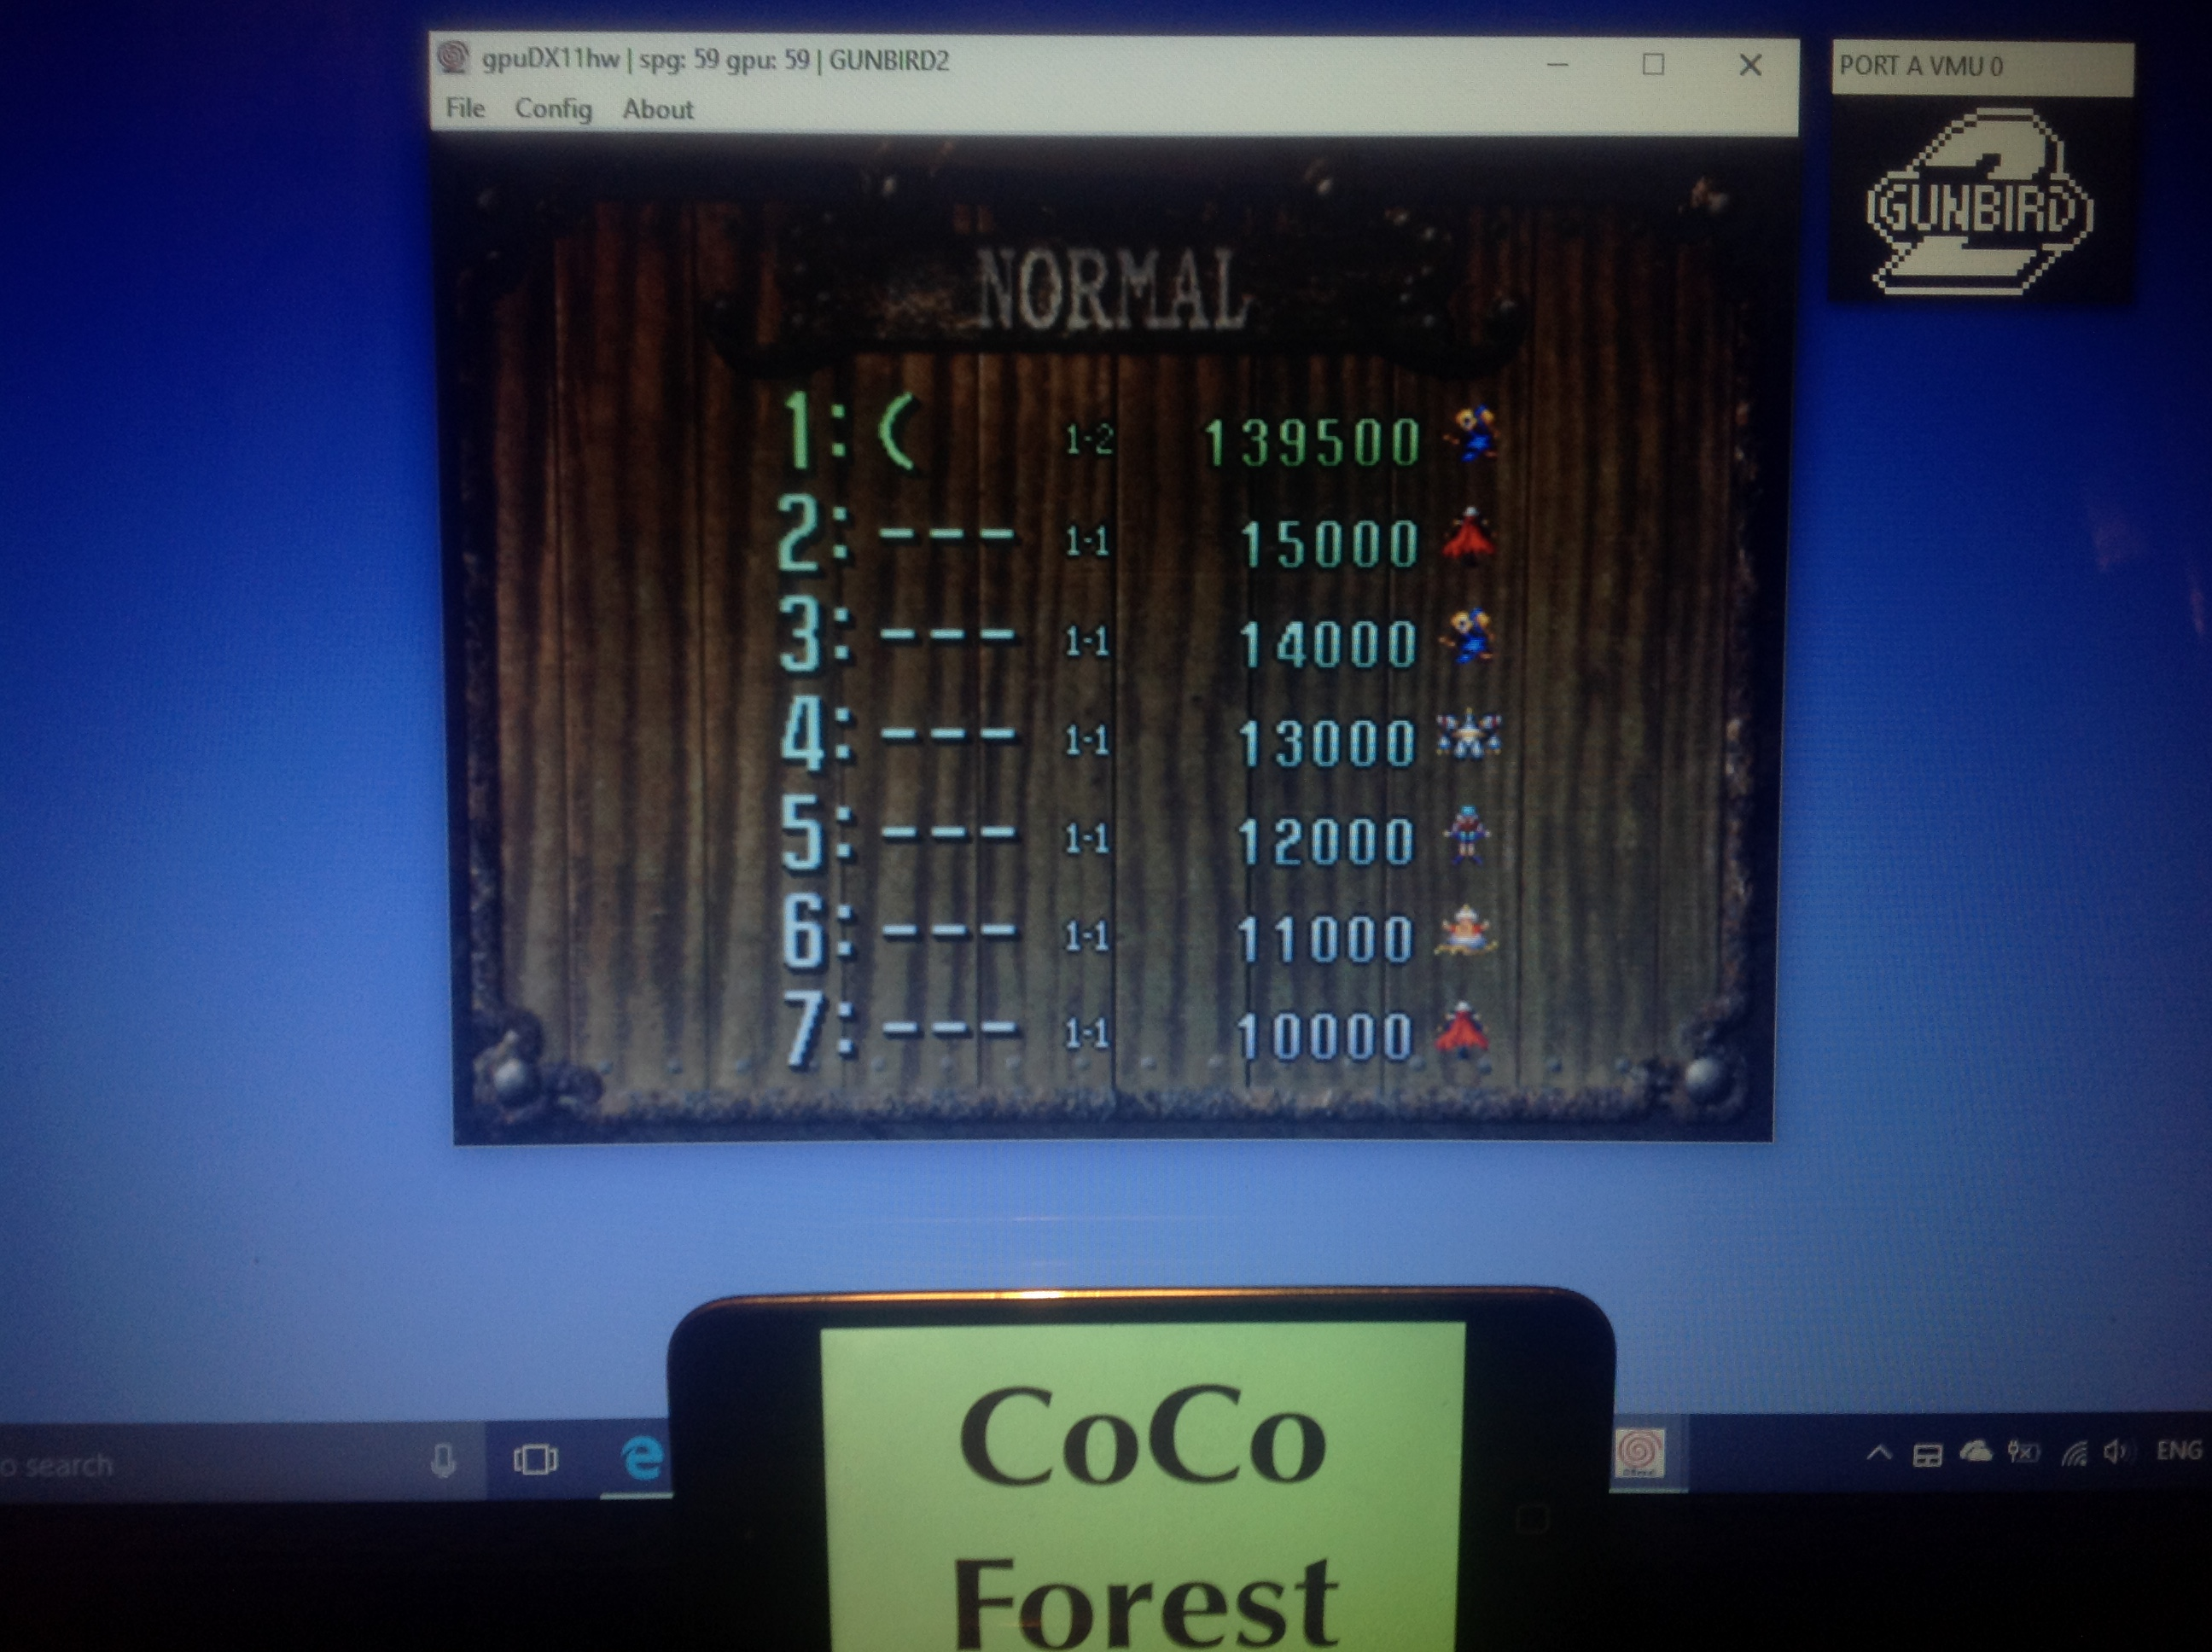 CoCoForest: Gunbird 2 (Dreamcast Emulated) 139,500 points on 2018-01-31 12:32:35